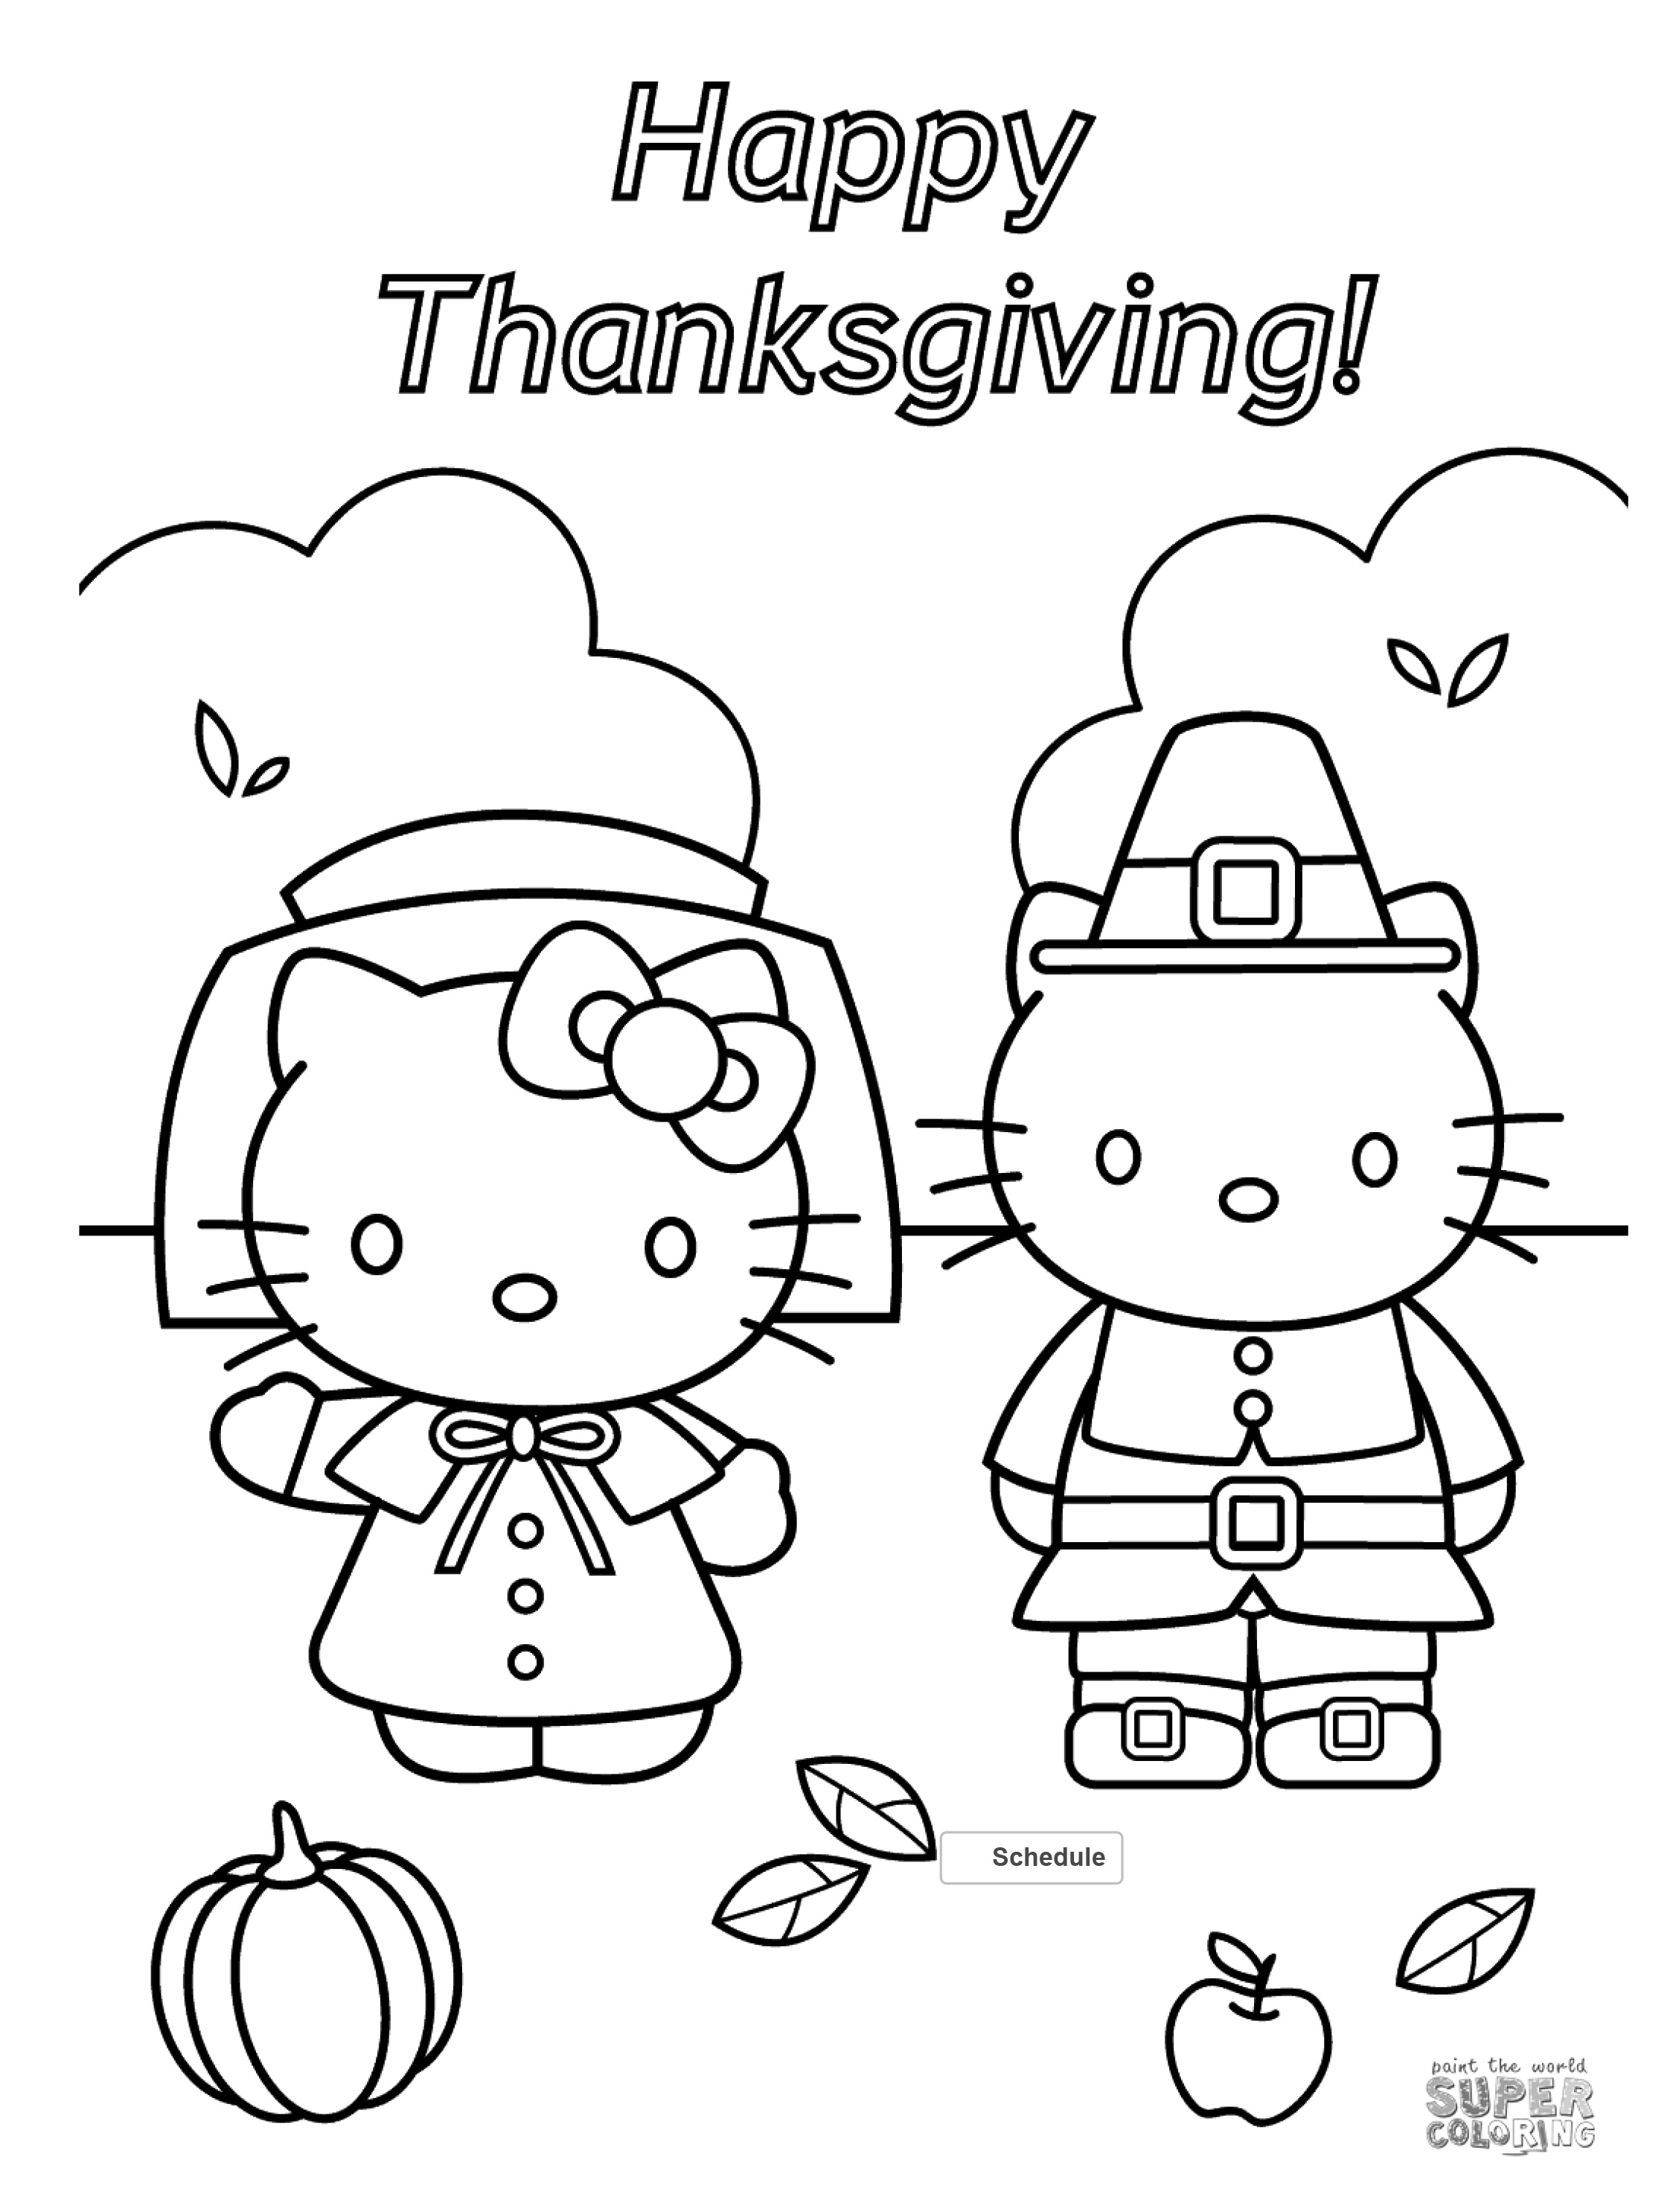 Free Thanksgiving Coloring Pages For Adults & Kids - Happiness Is - Free Printable Turkey Coloring Pages